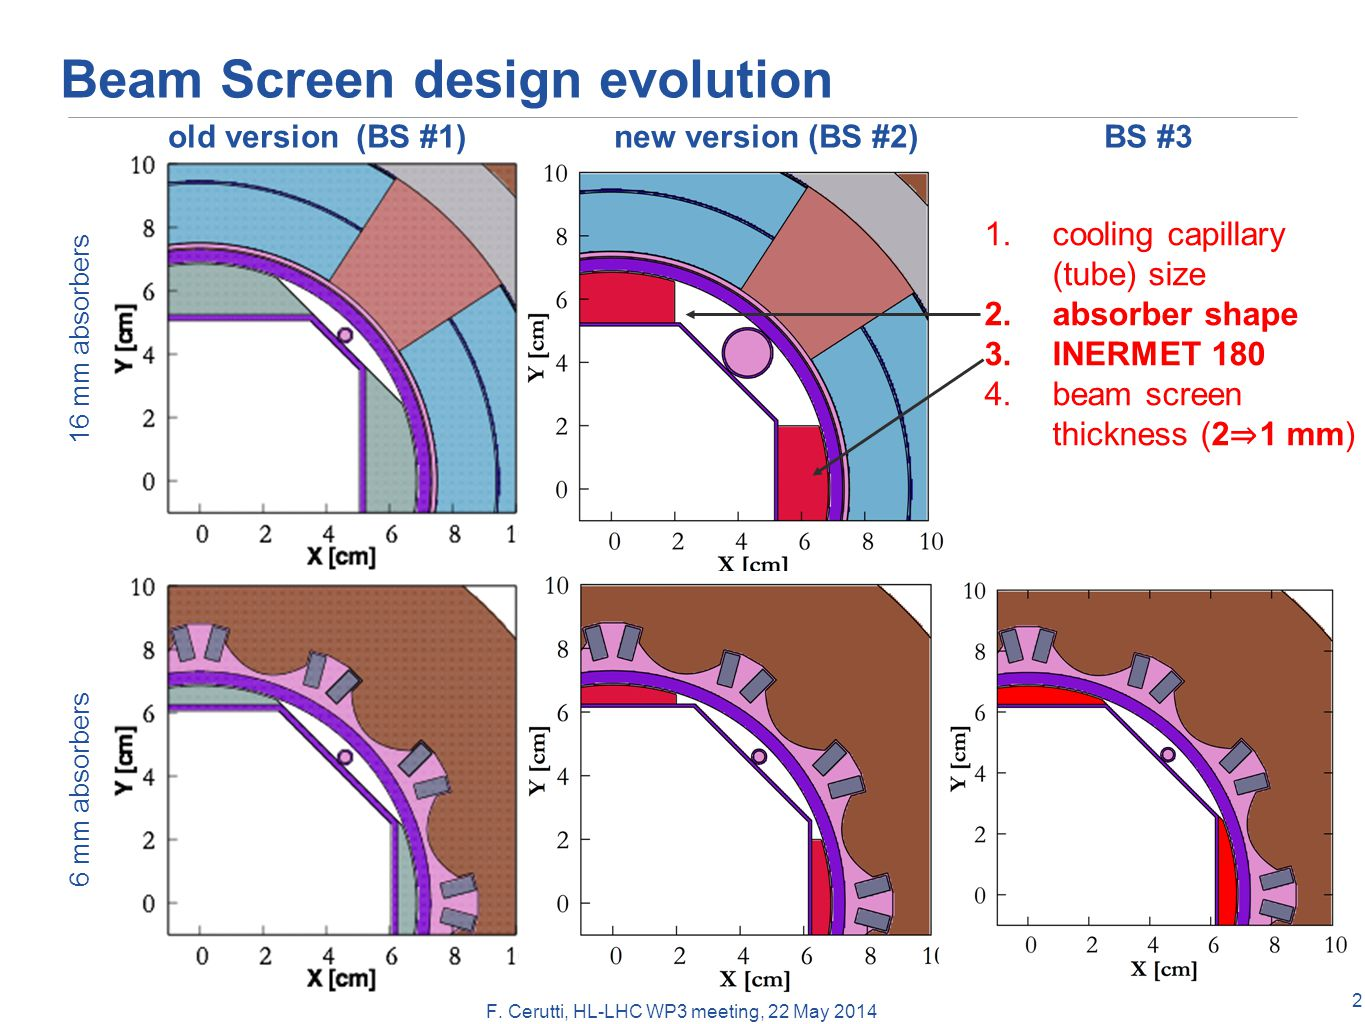 F. Cerutti, HL-LHC WP3 meeting, 22 May 2014 Beam Screen design evolution 16 mm absorbers 6 mm absorbers old version (BS #1) new version (BS #2) 1.cool